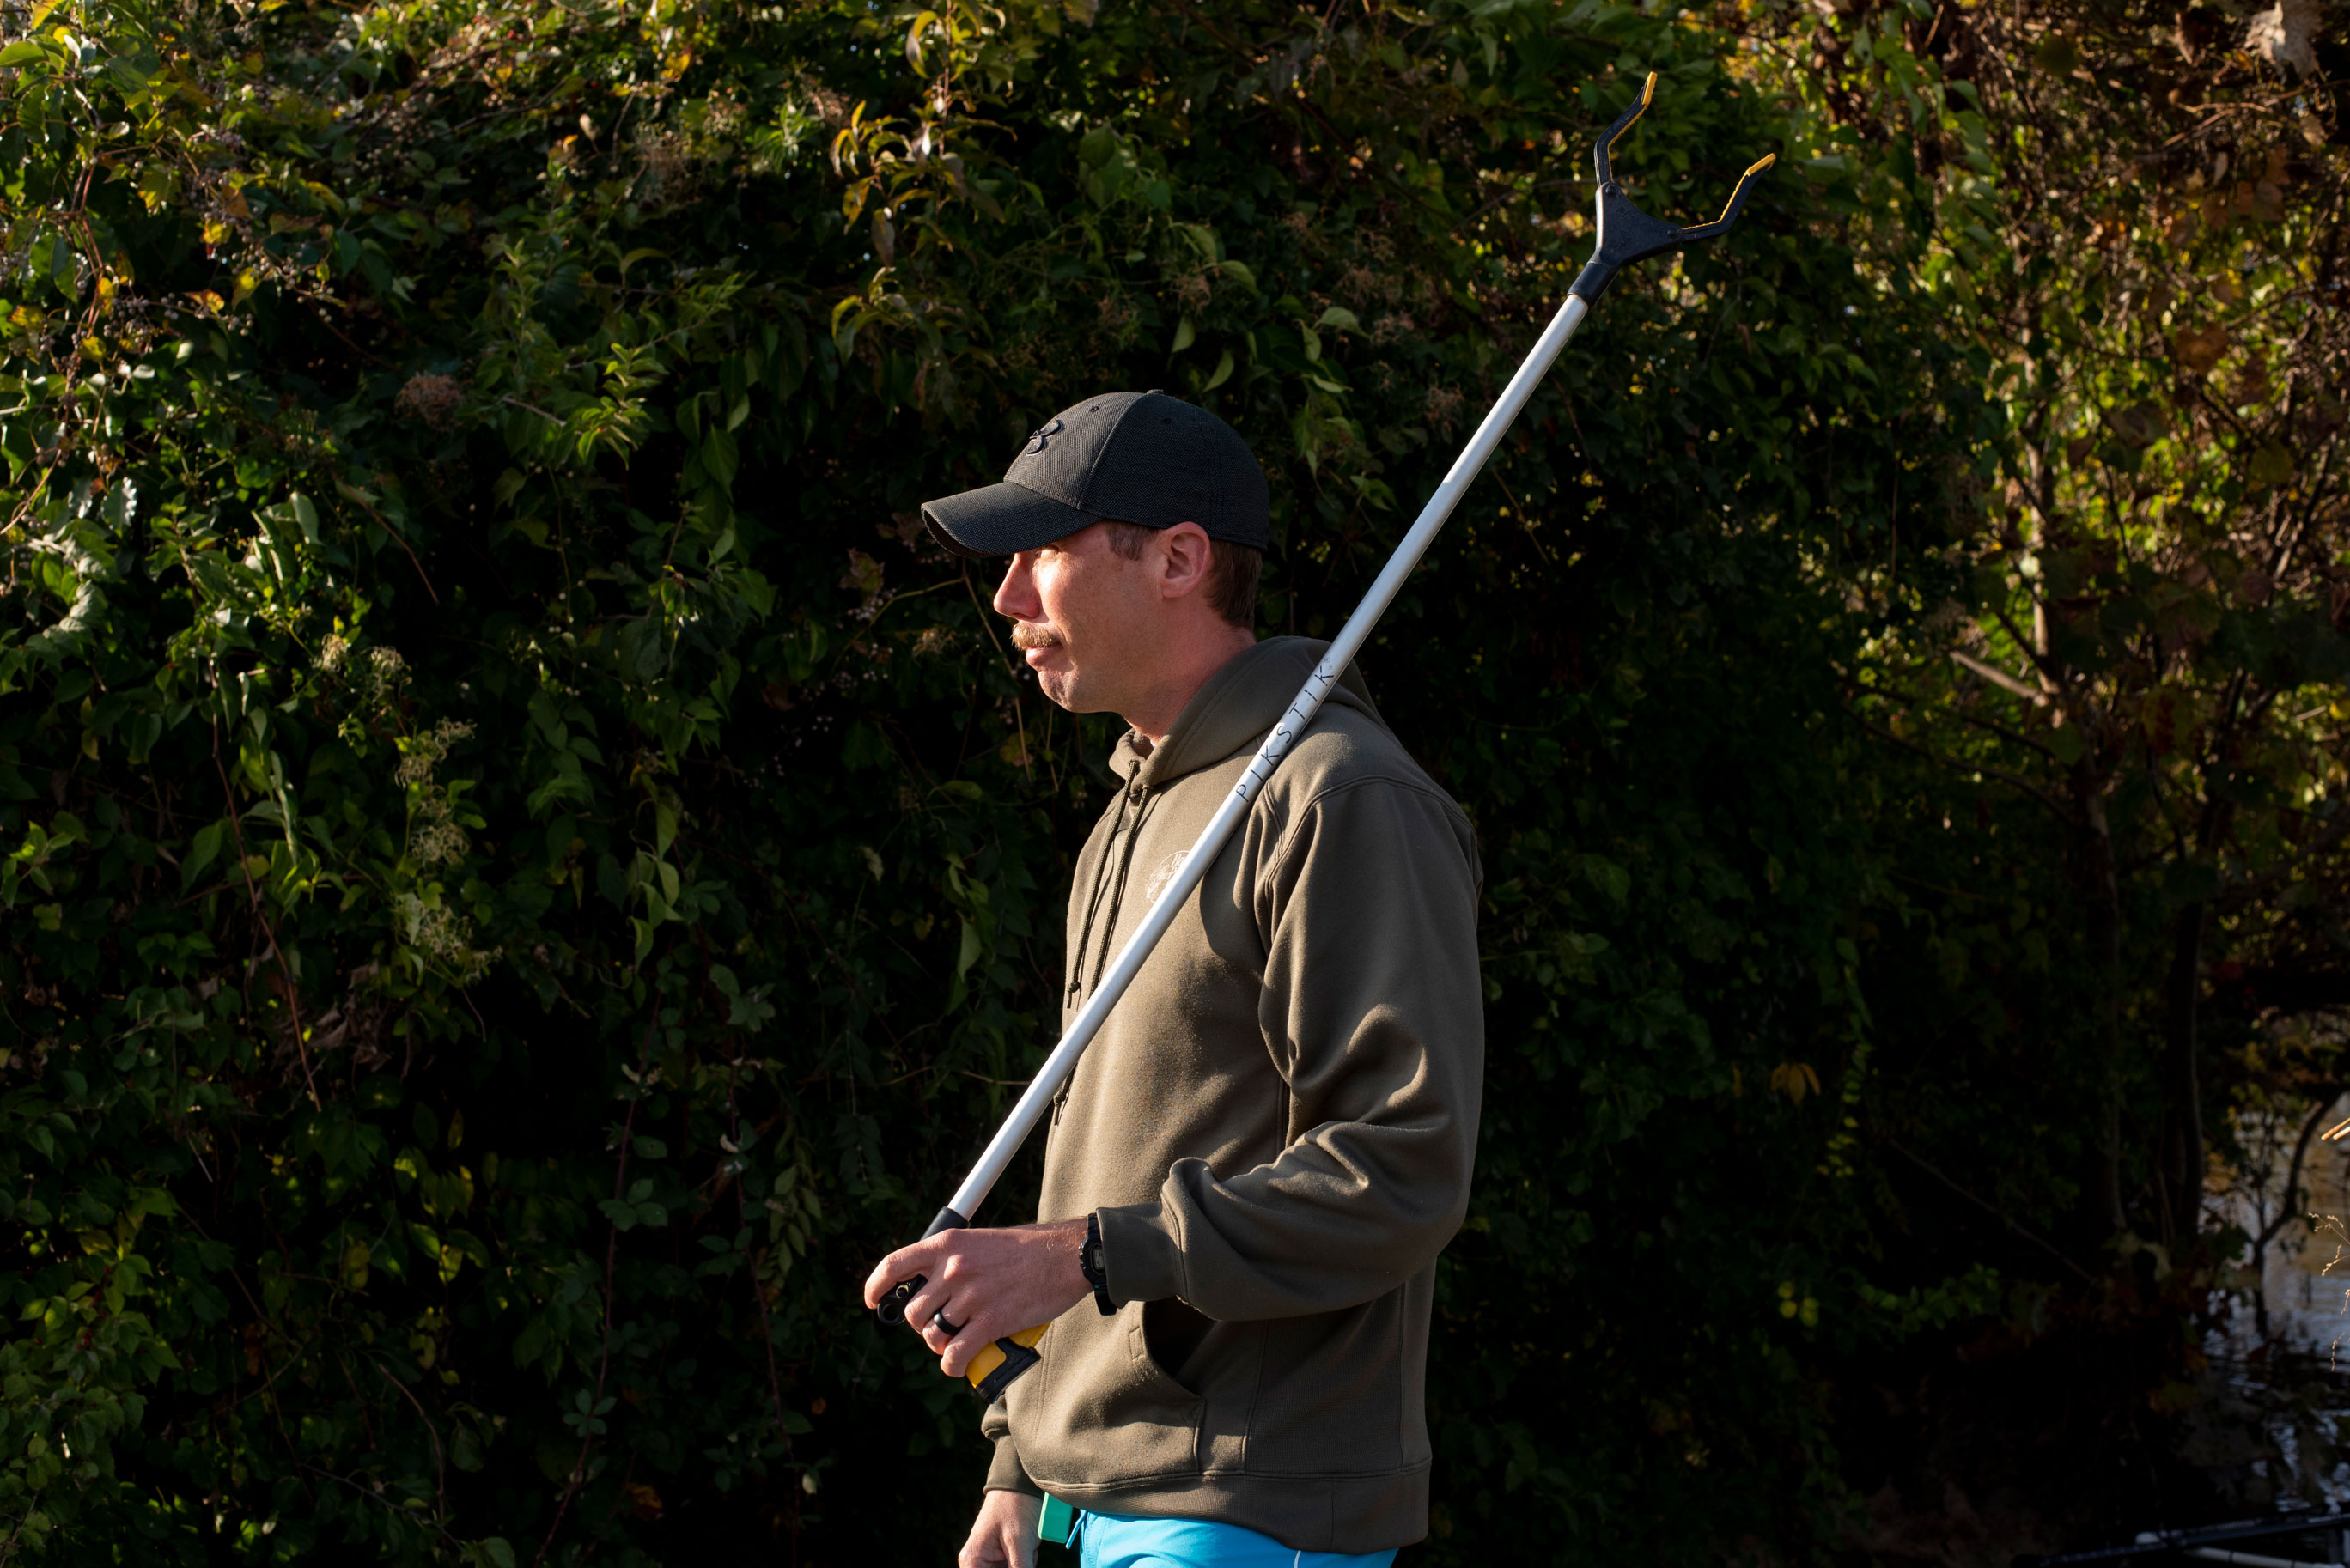 Joseph Wright poses for a portrait with his picker on November 5, 2019 in Alexandria, VA.